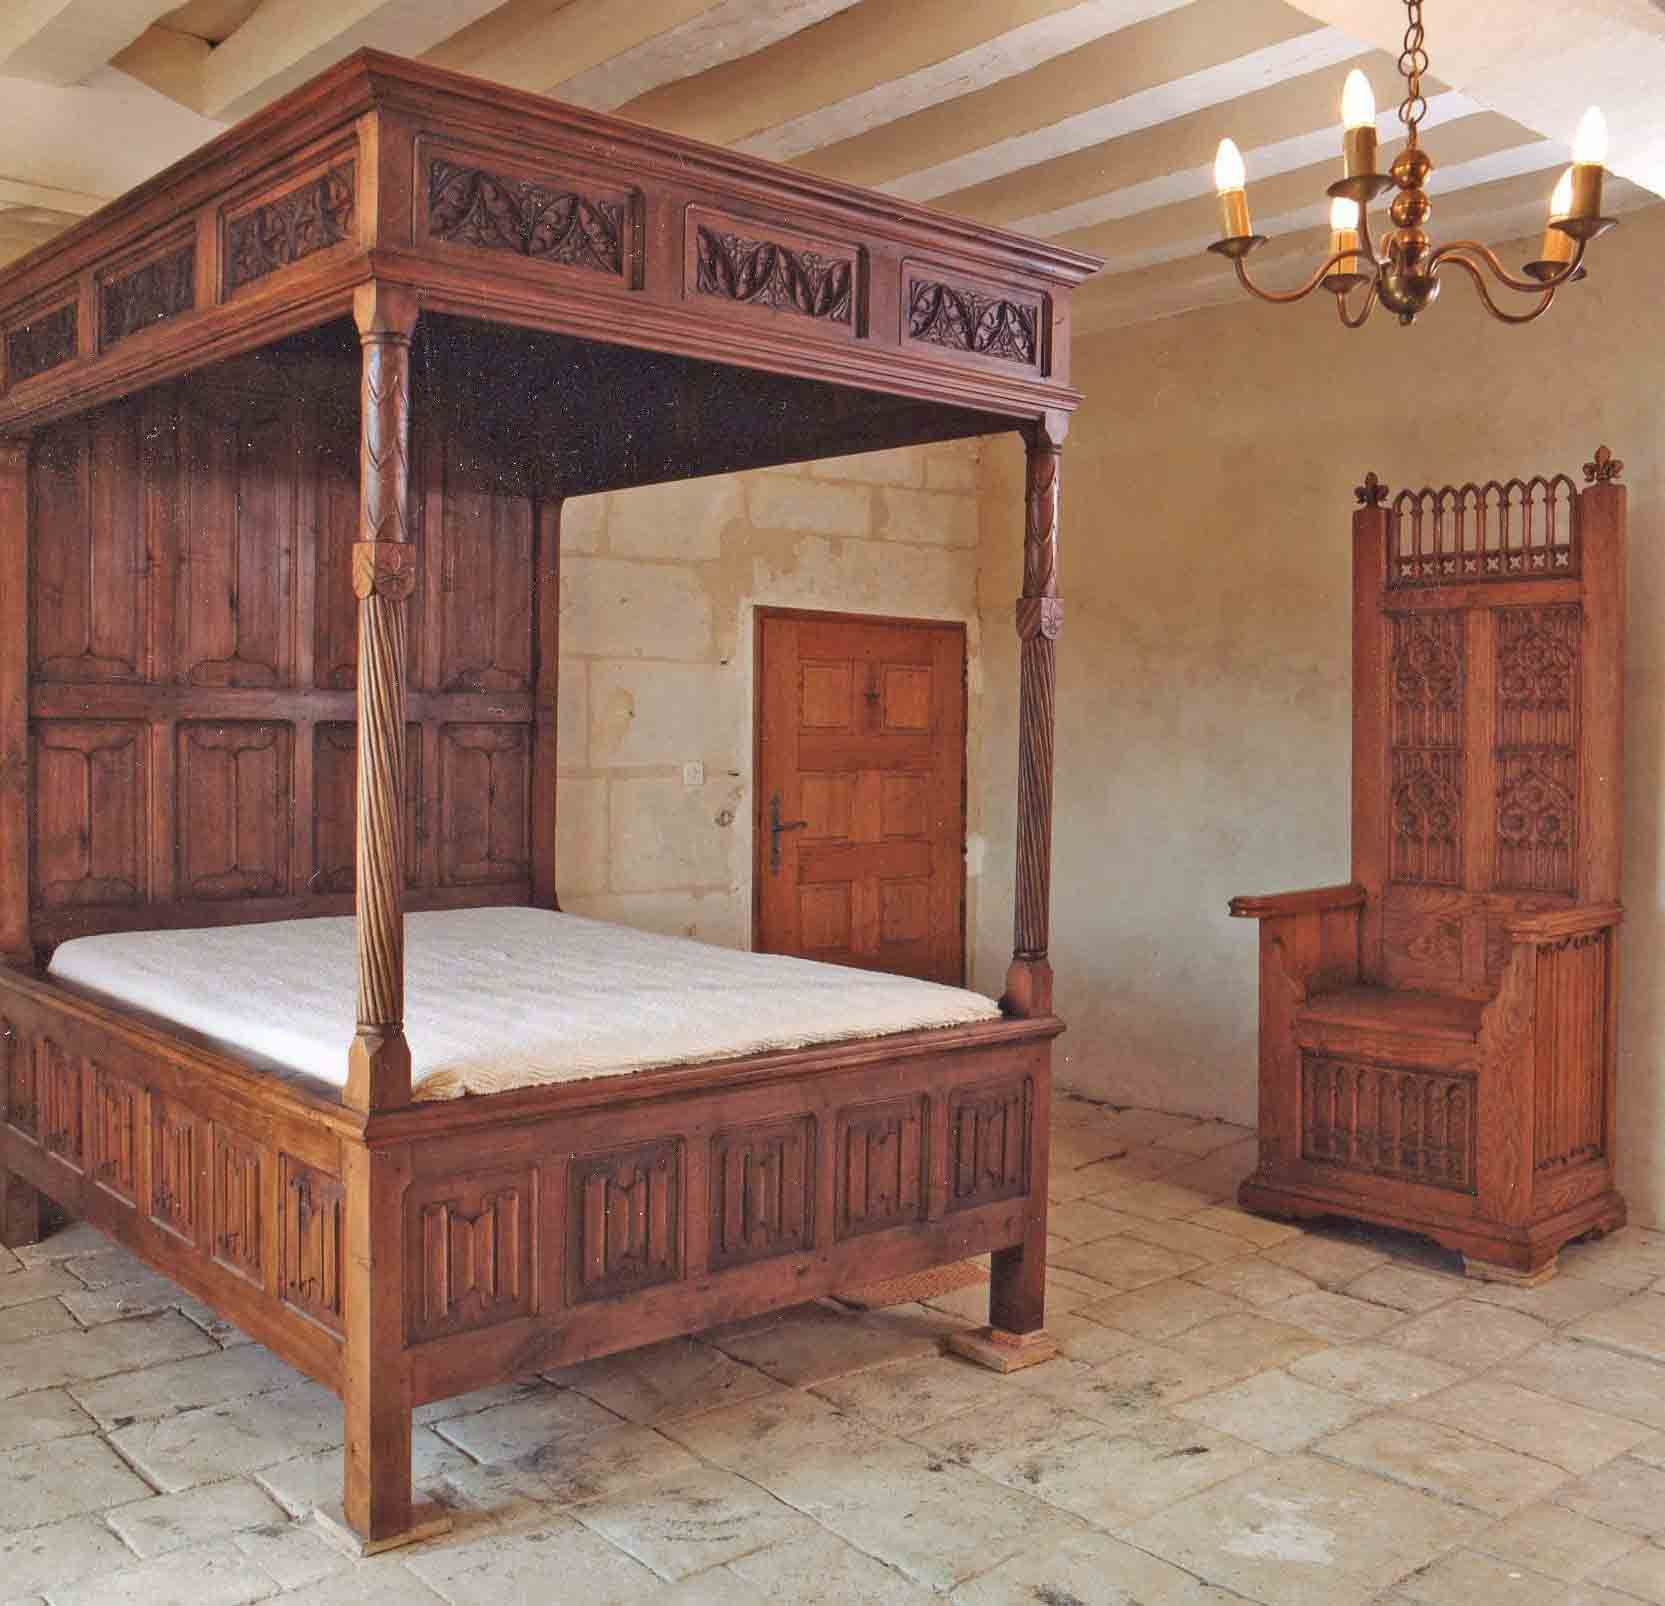 4 Poster Bed Melbourne Medieval Canopy Bed Google Search Dream Home